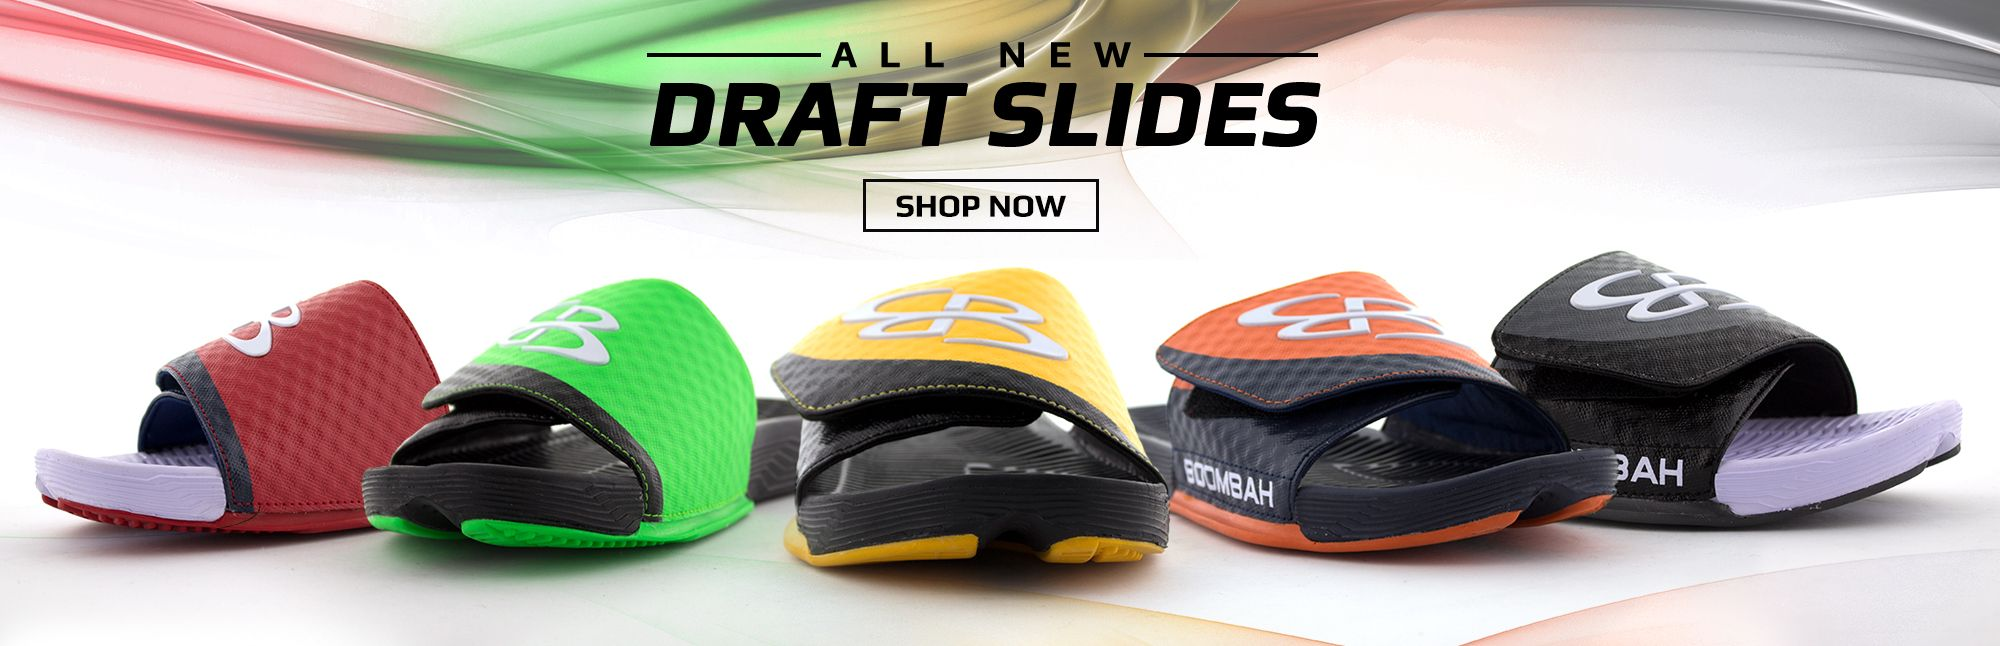 Boombah Draft Slide Sandals